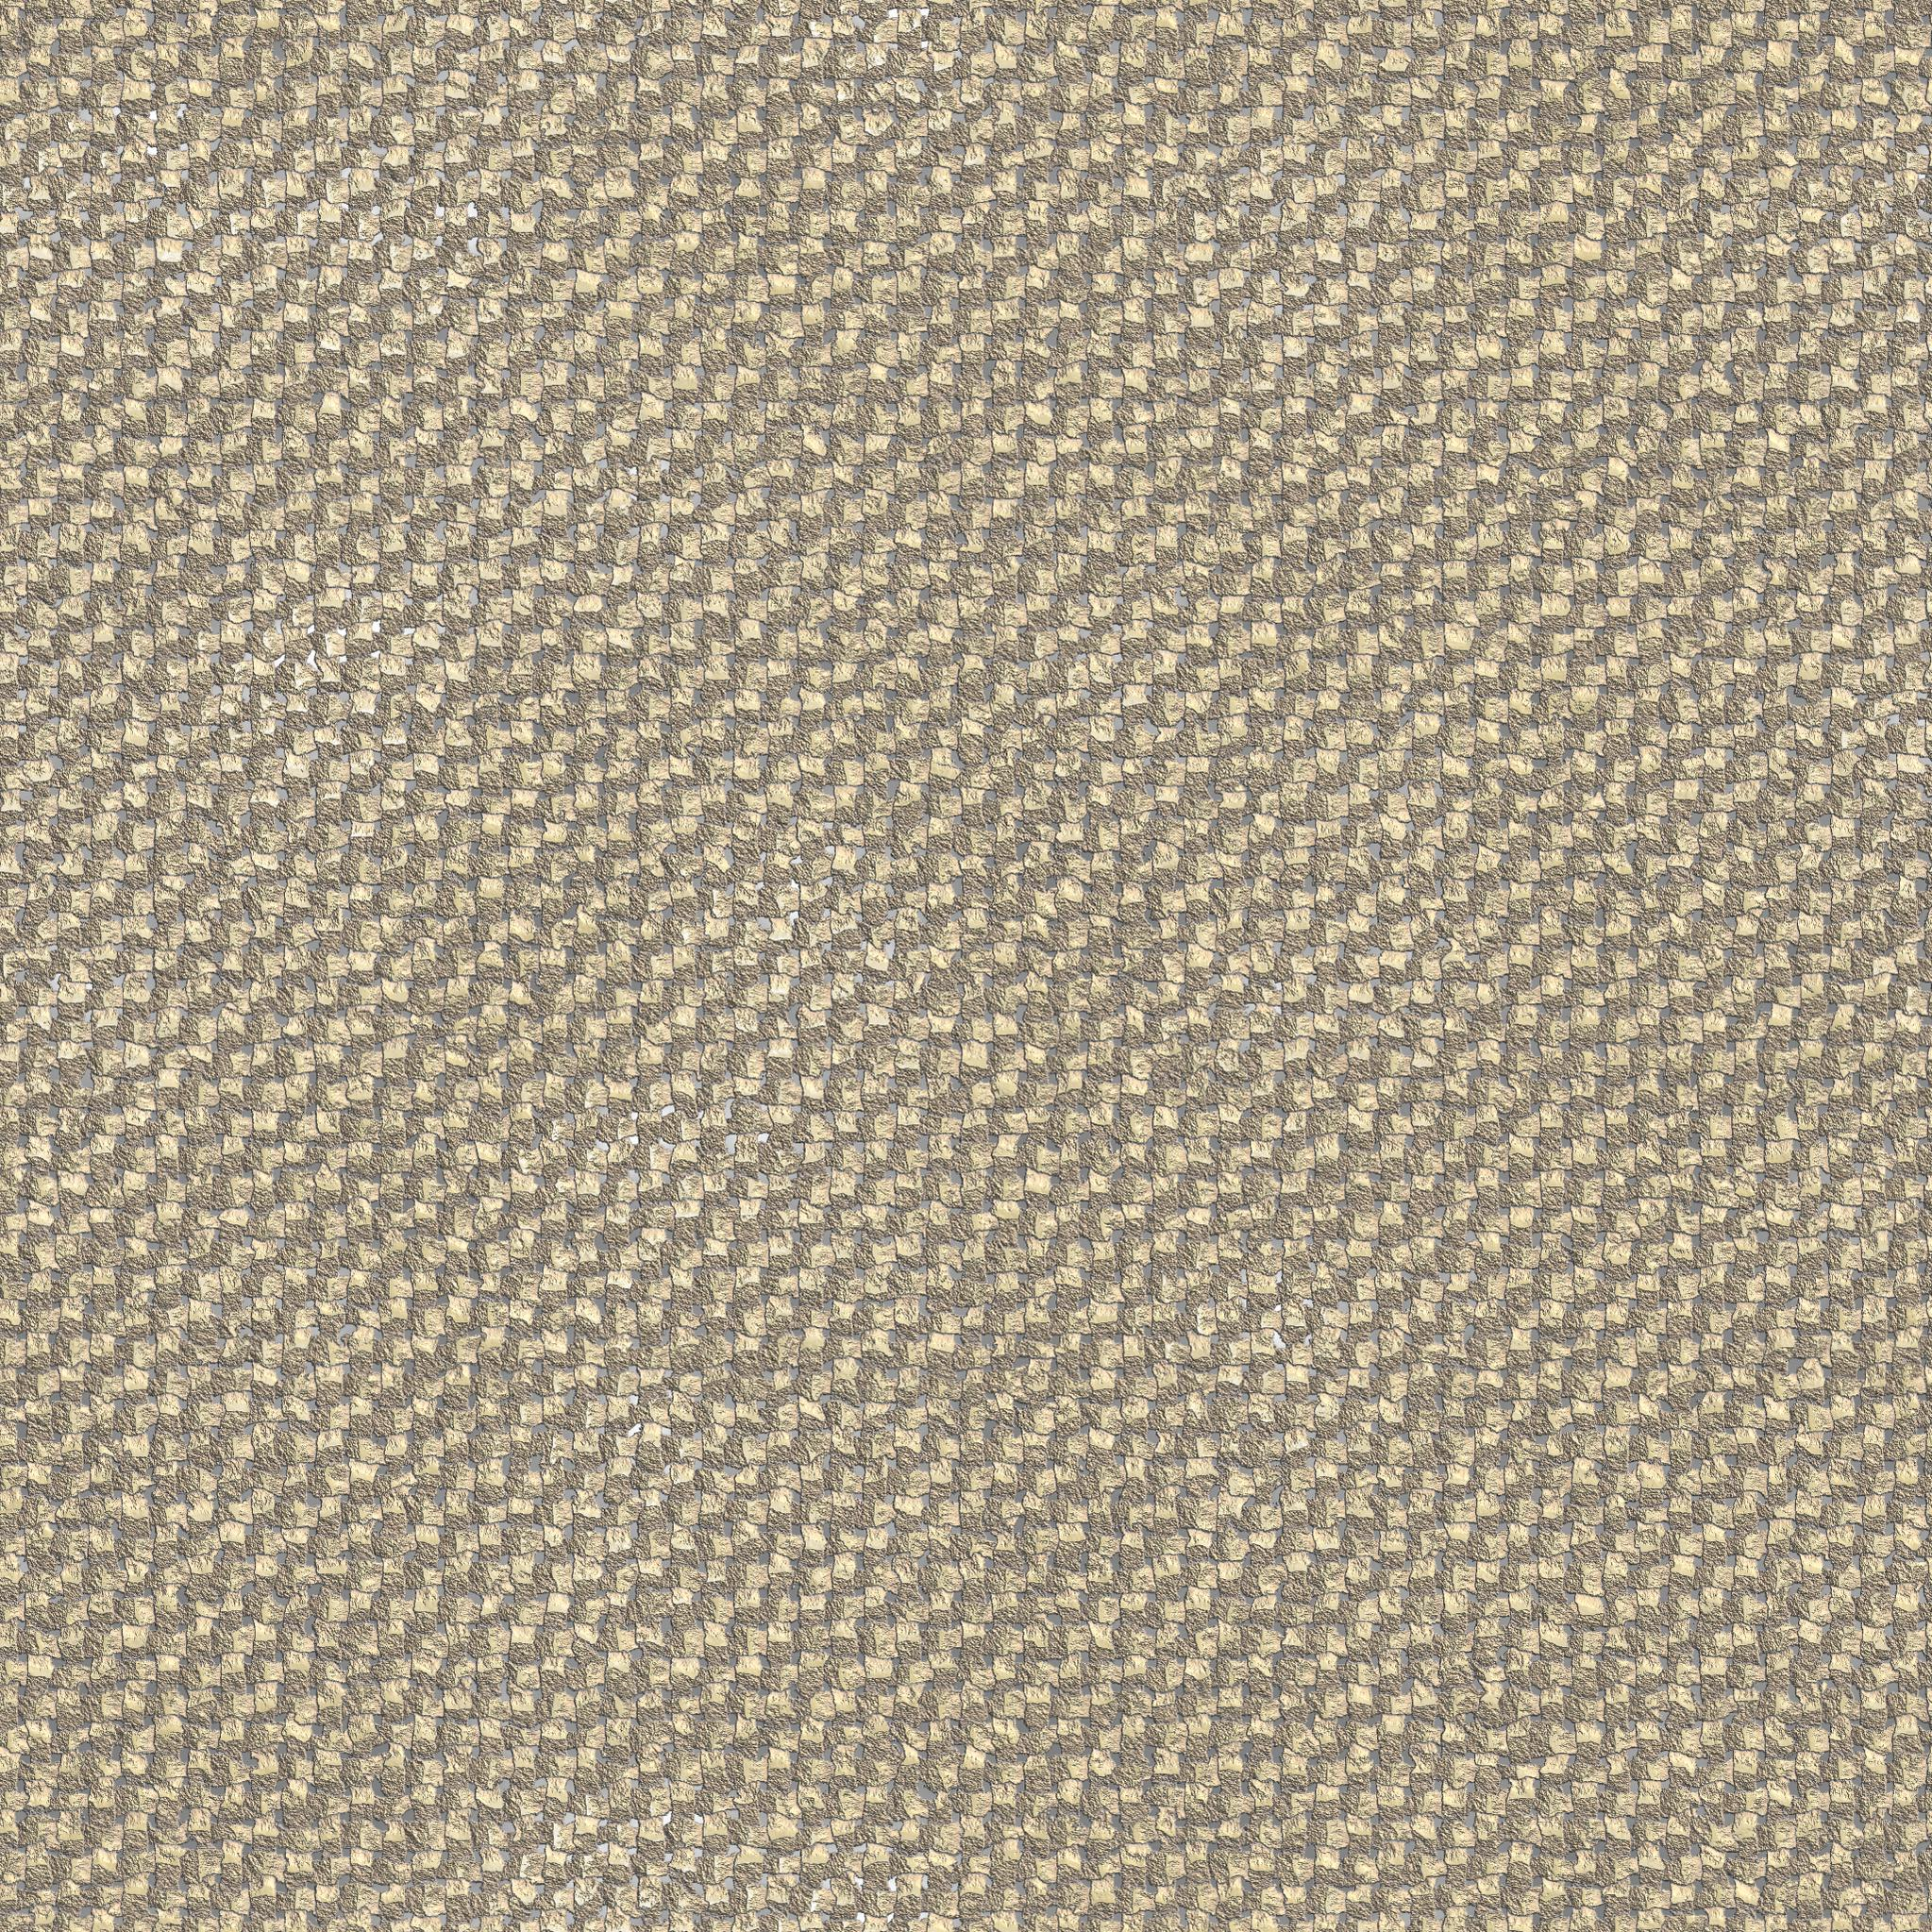 Camoflage seamless texture maps - free to use - AOA Forums